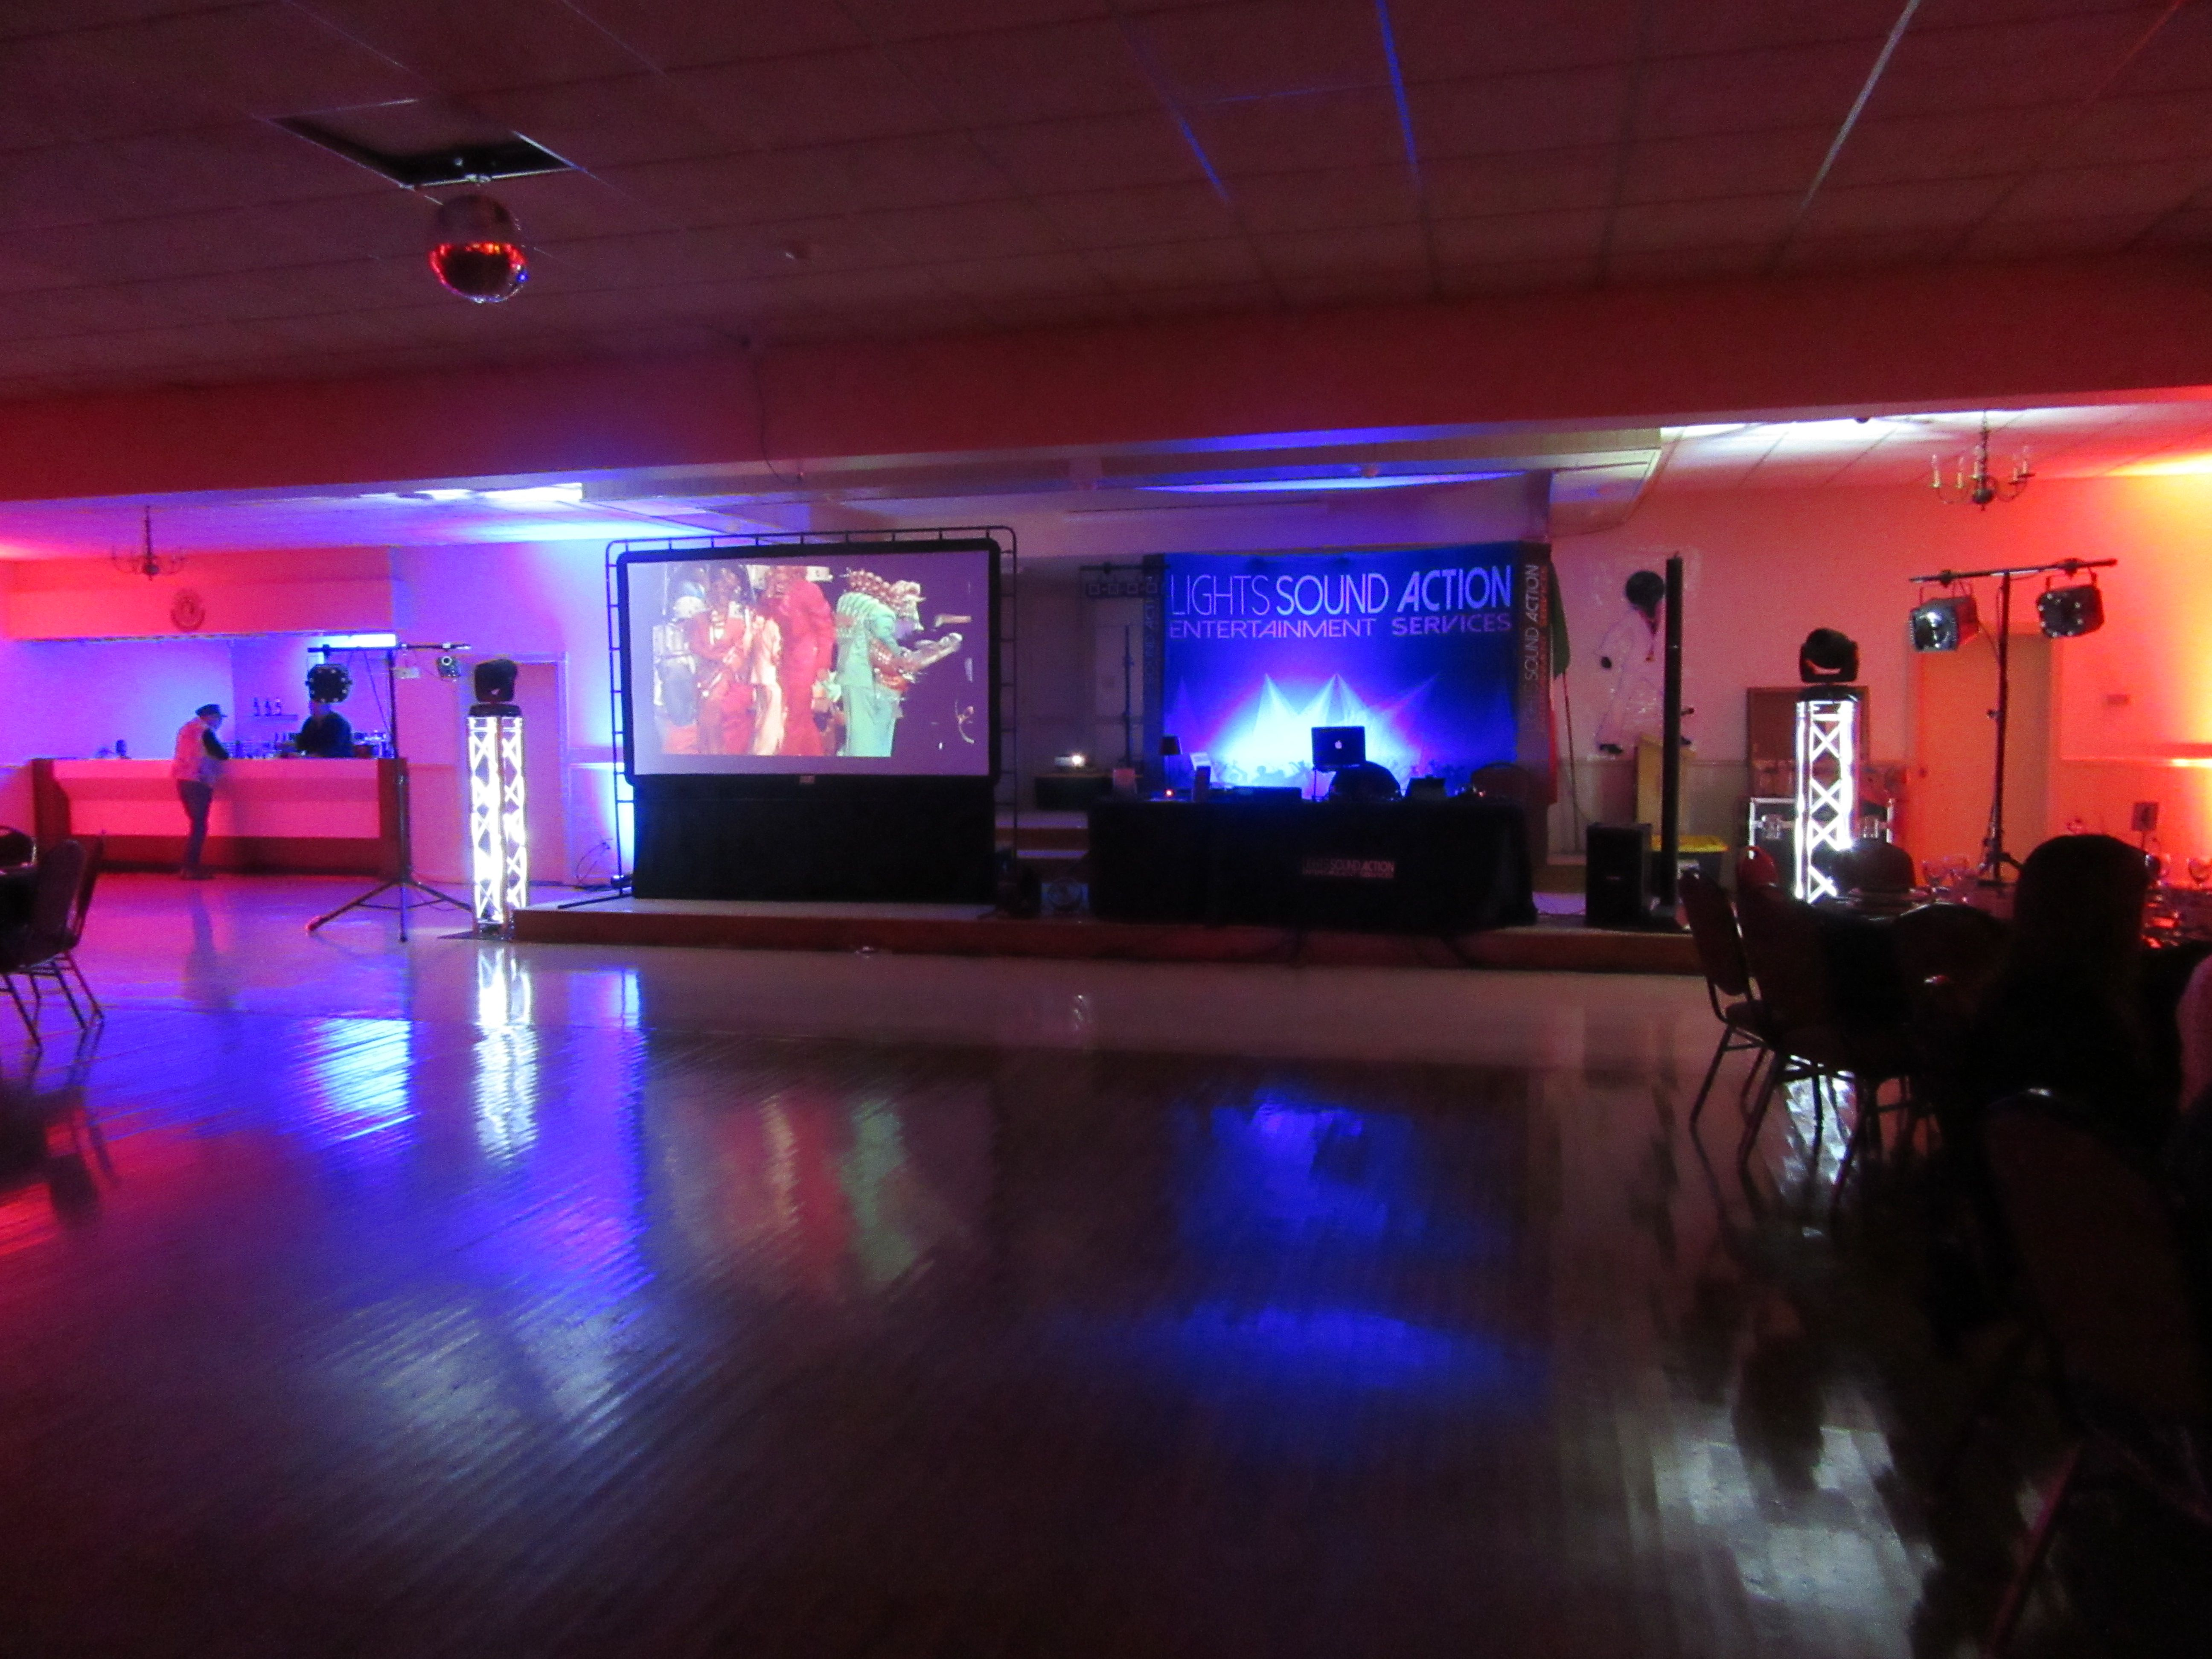 Lighting Effects by Lights Sound Action Entertainment